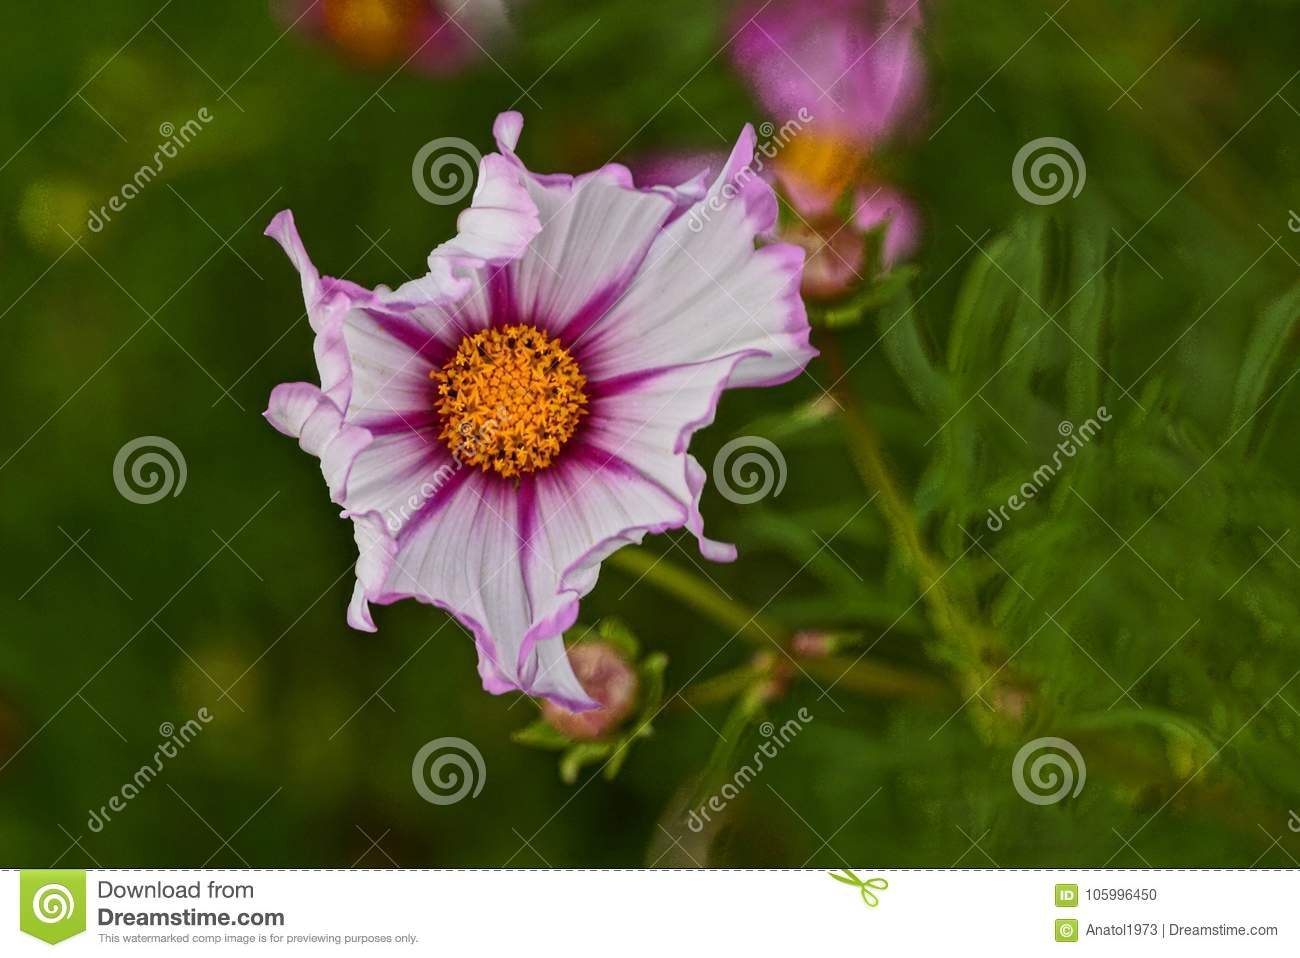 Colored Bud Of A Beautiful Flower In Green Plants Stock Photo